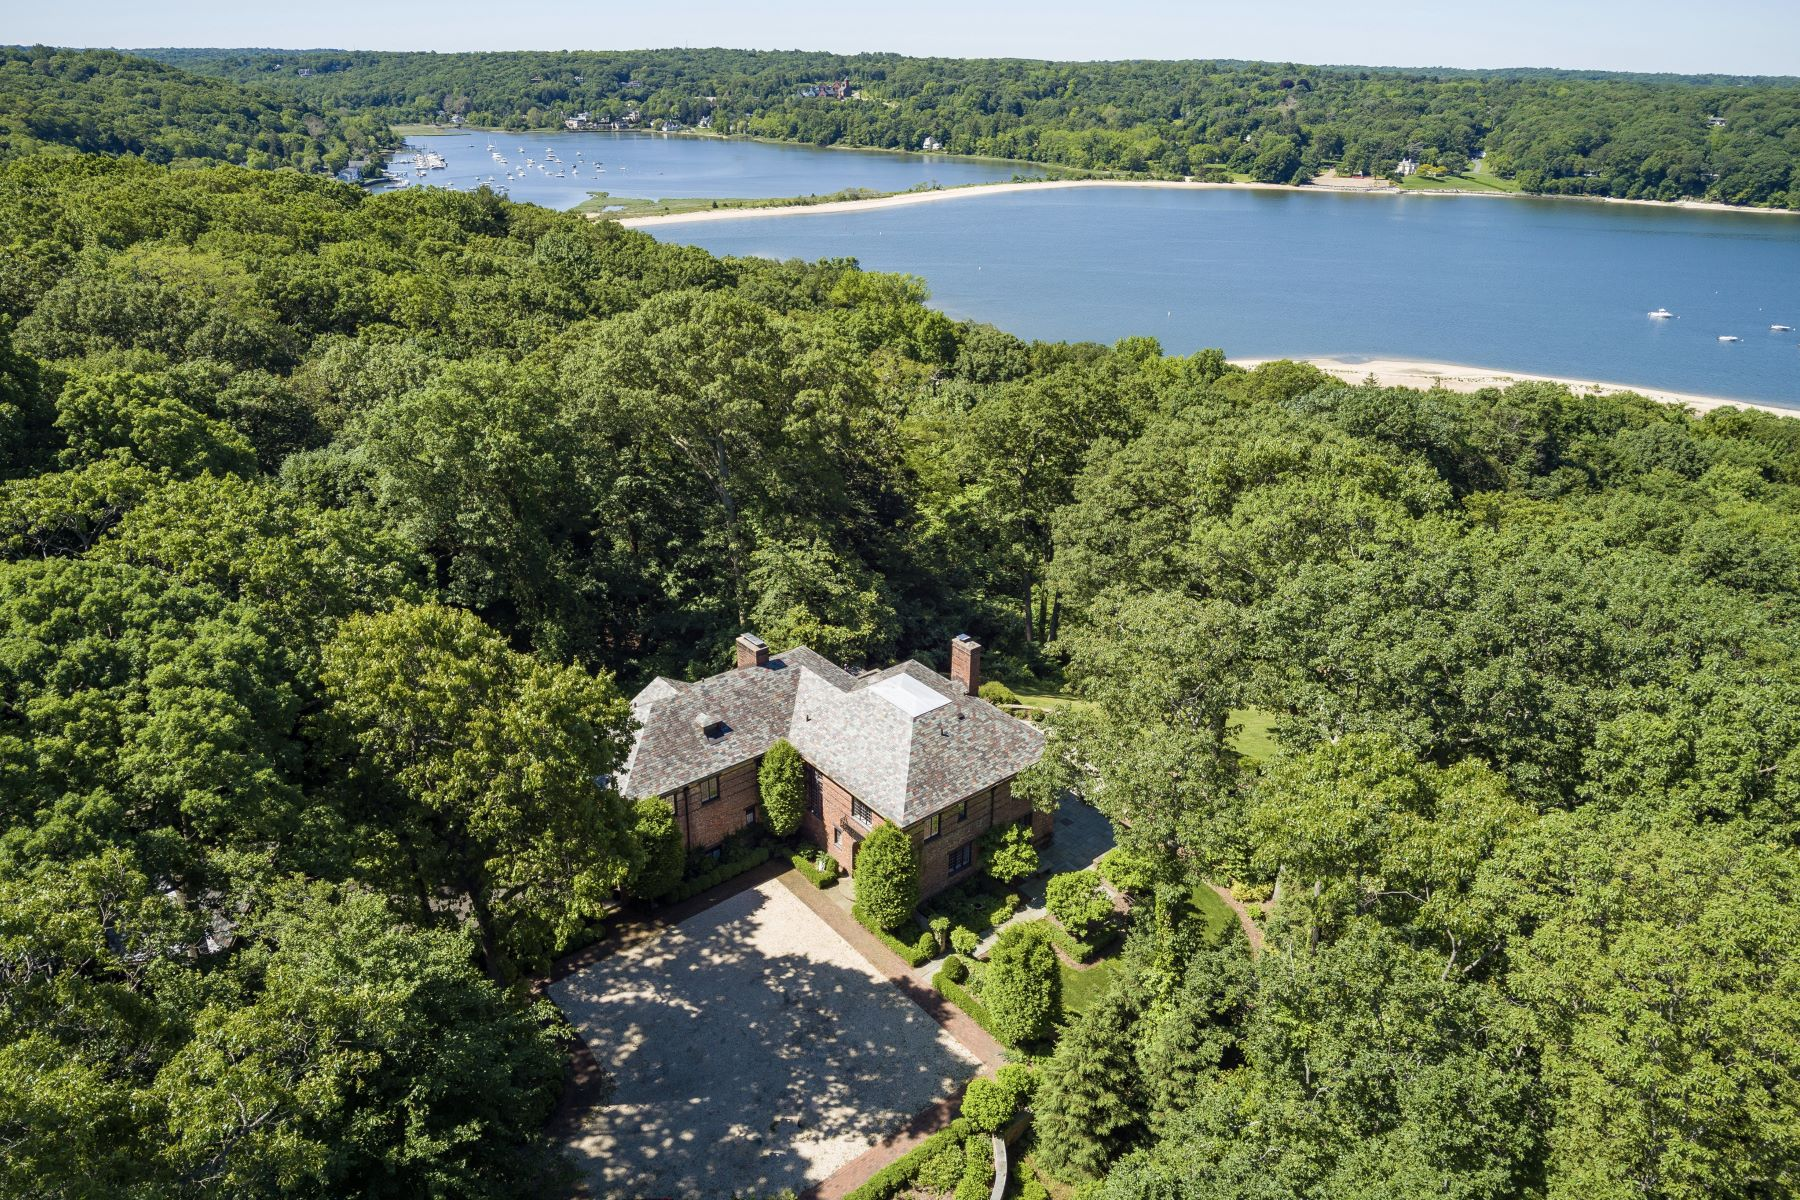 Single Family Homes for Sale at Cold Spring Hrbr 55 Walnut Tree Ln Cold Spring Harbor, New York 11724 United States